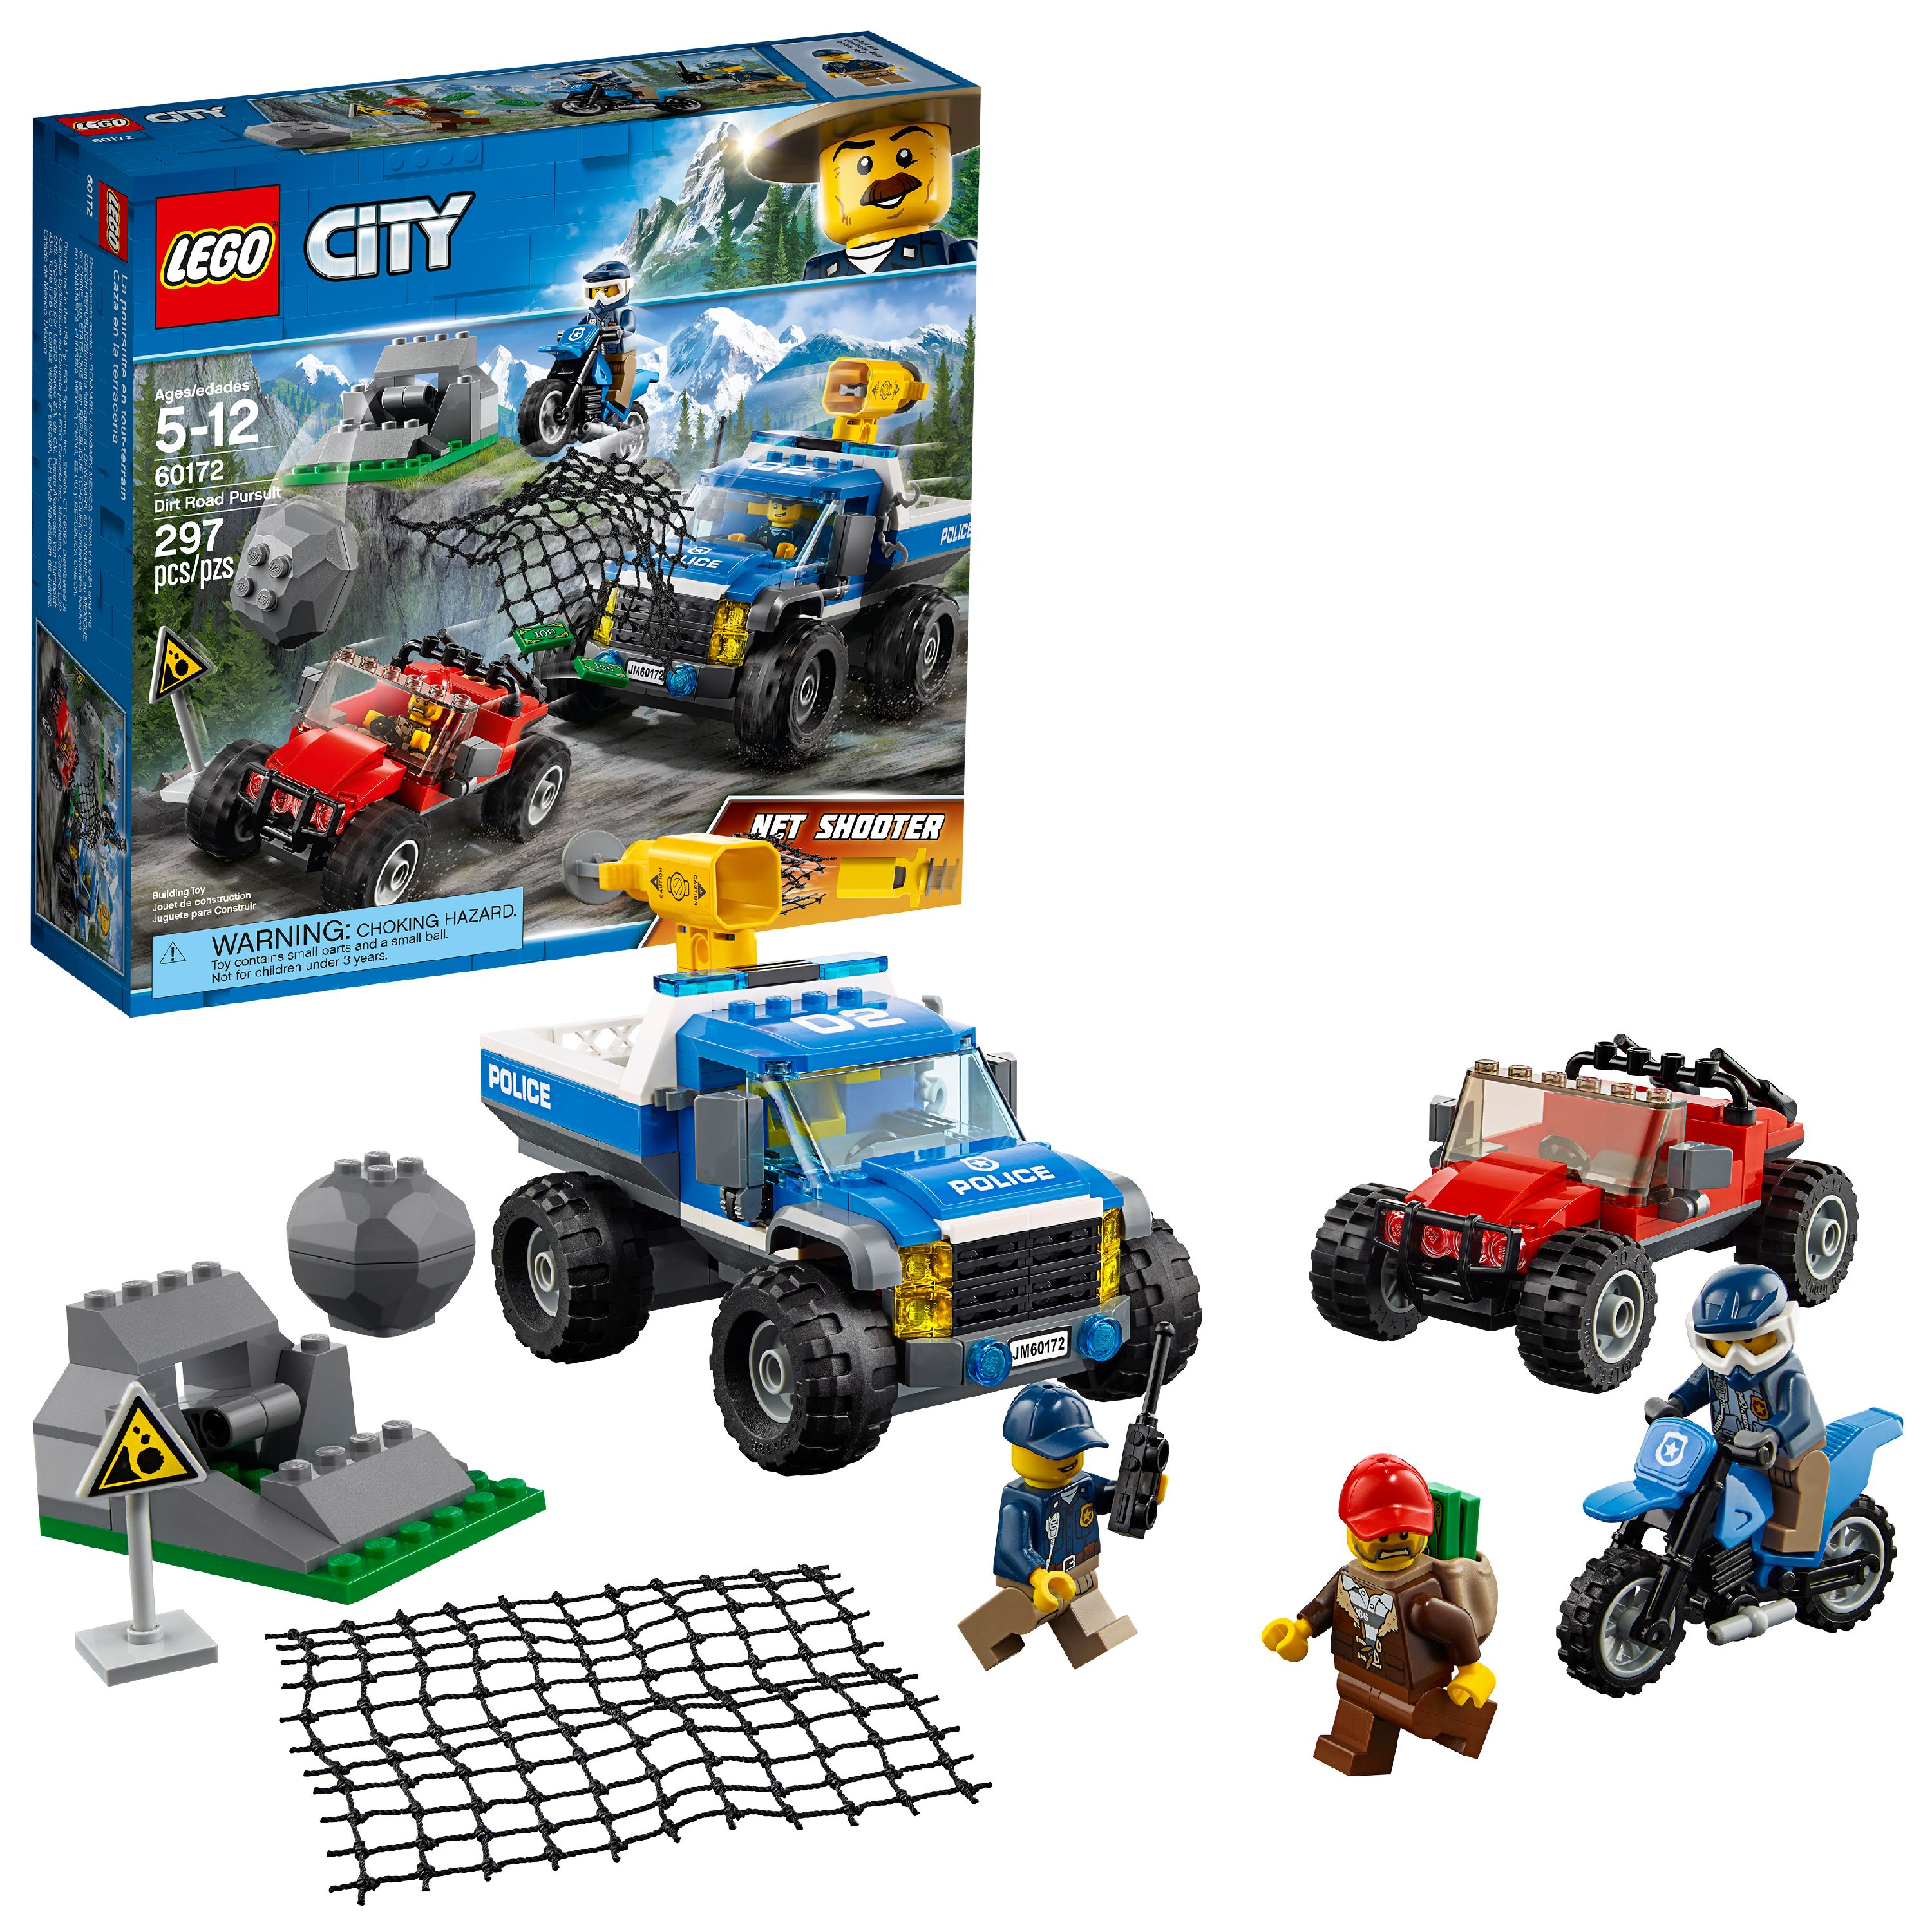 LEGO City Police Dirt Road Pursuit 60172 Building Set